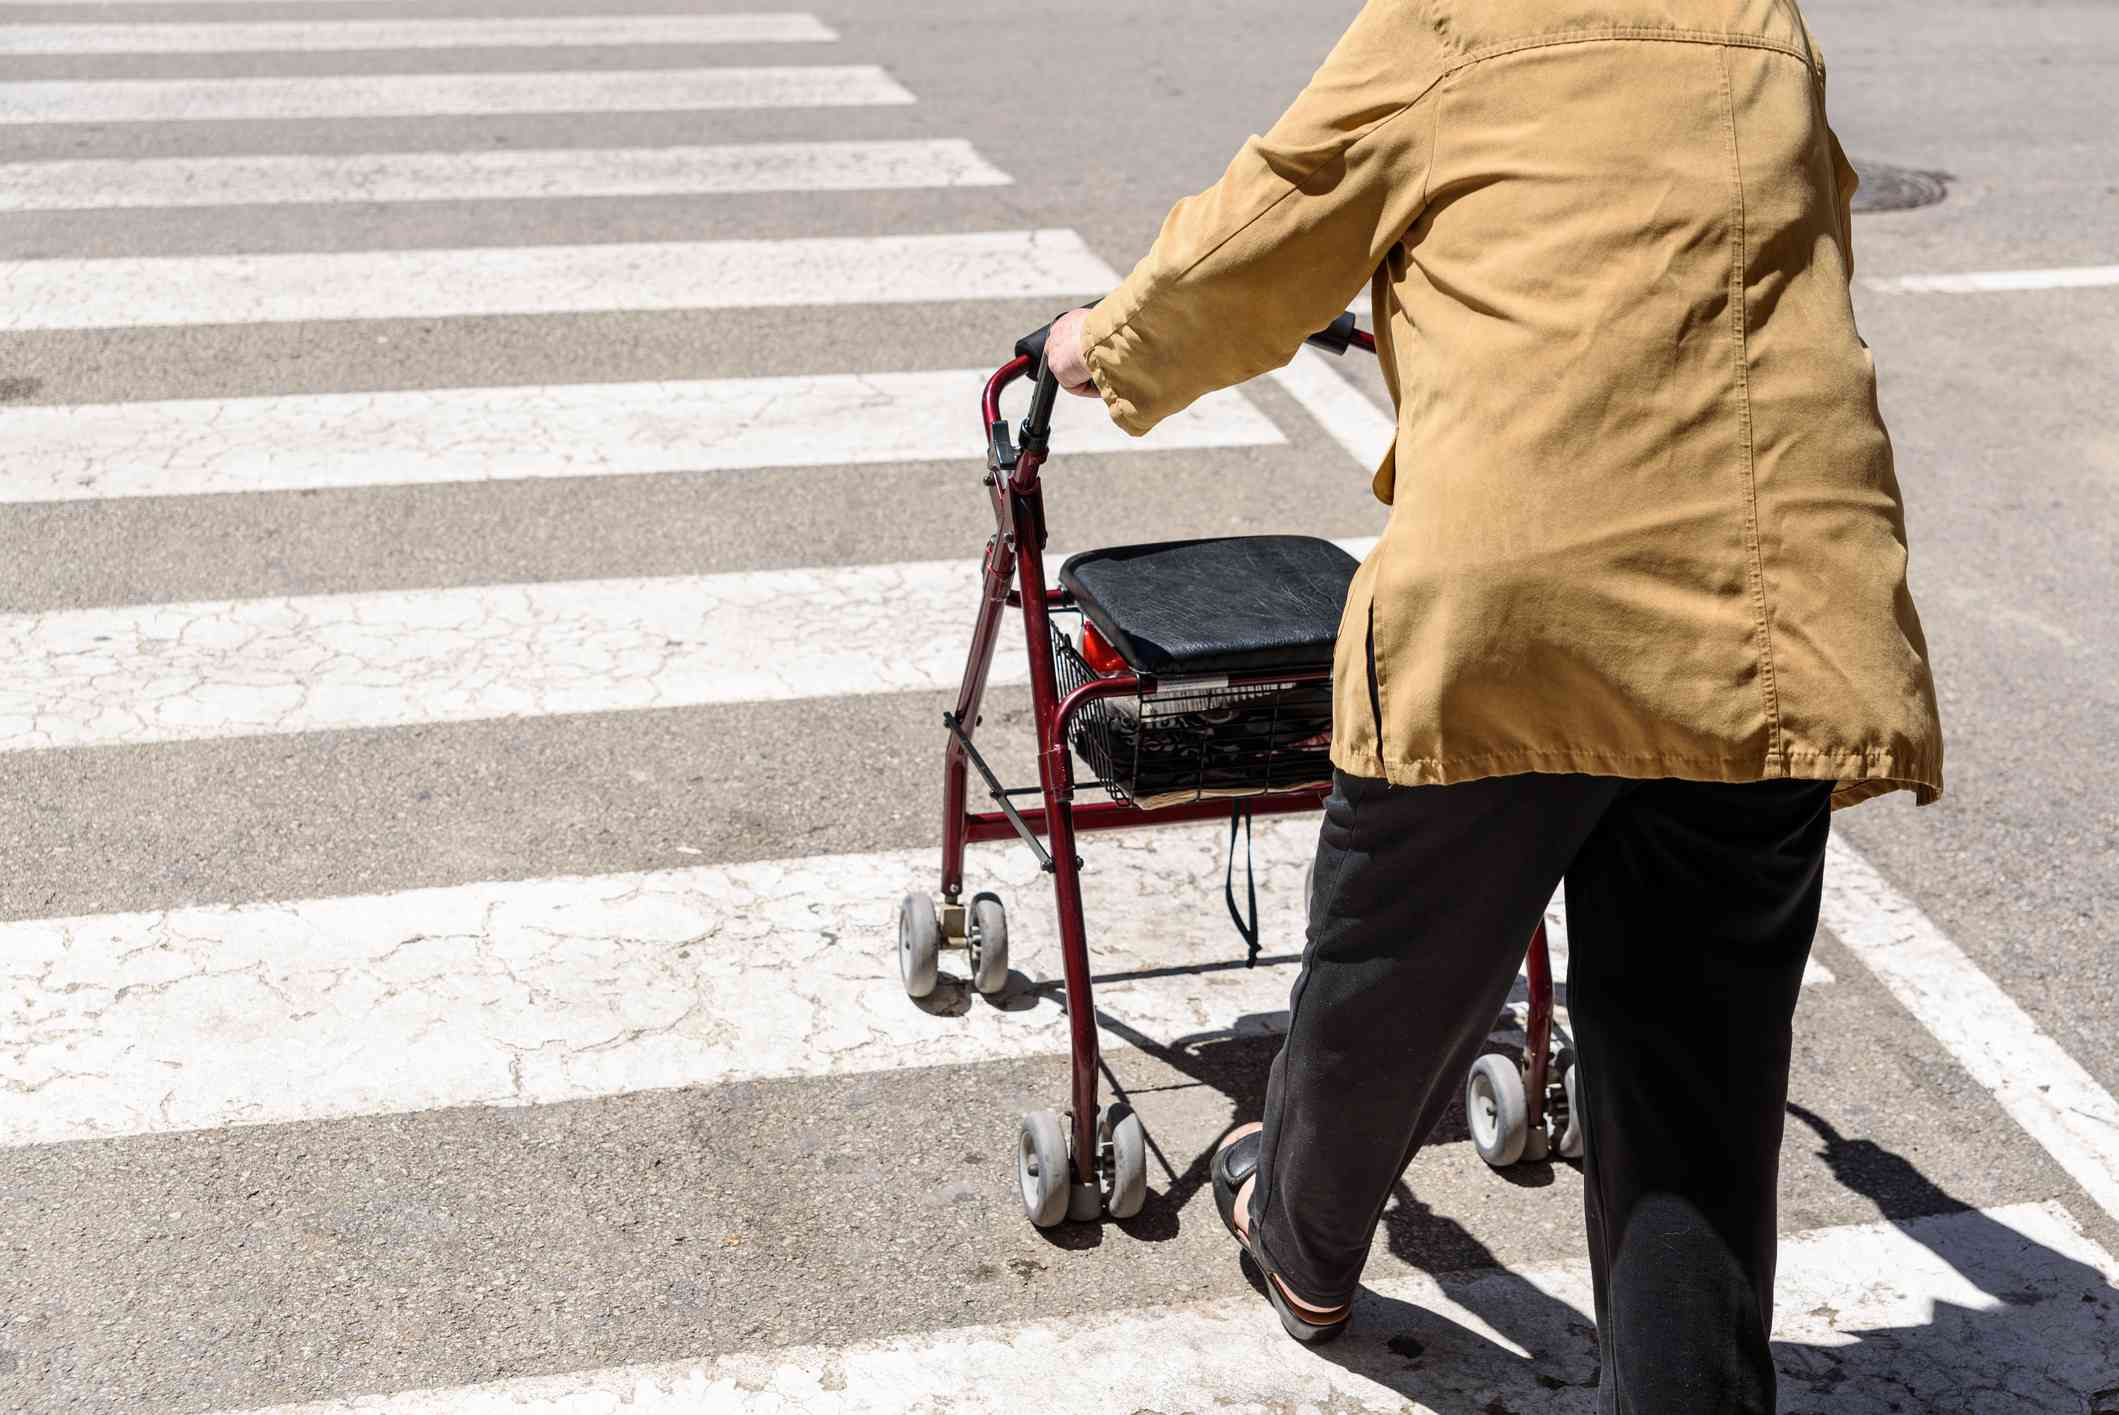 An old person crossing the road using a walker.